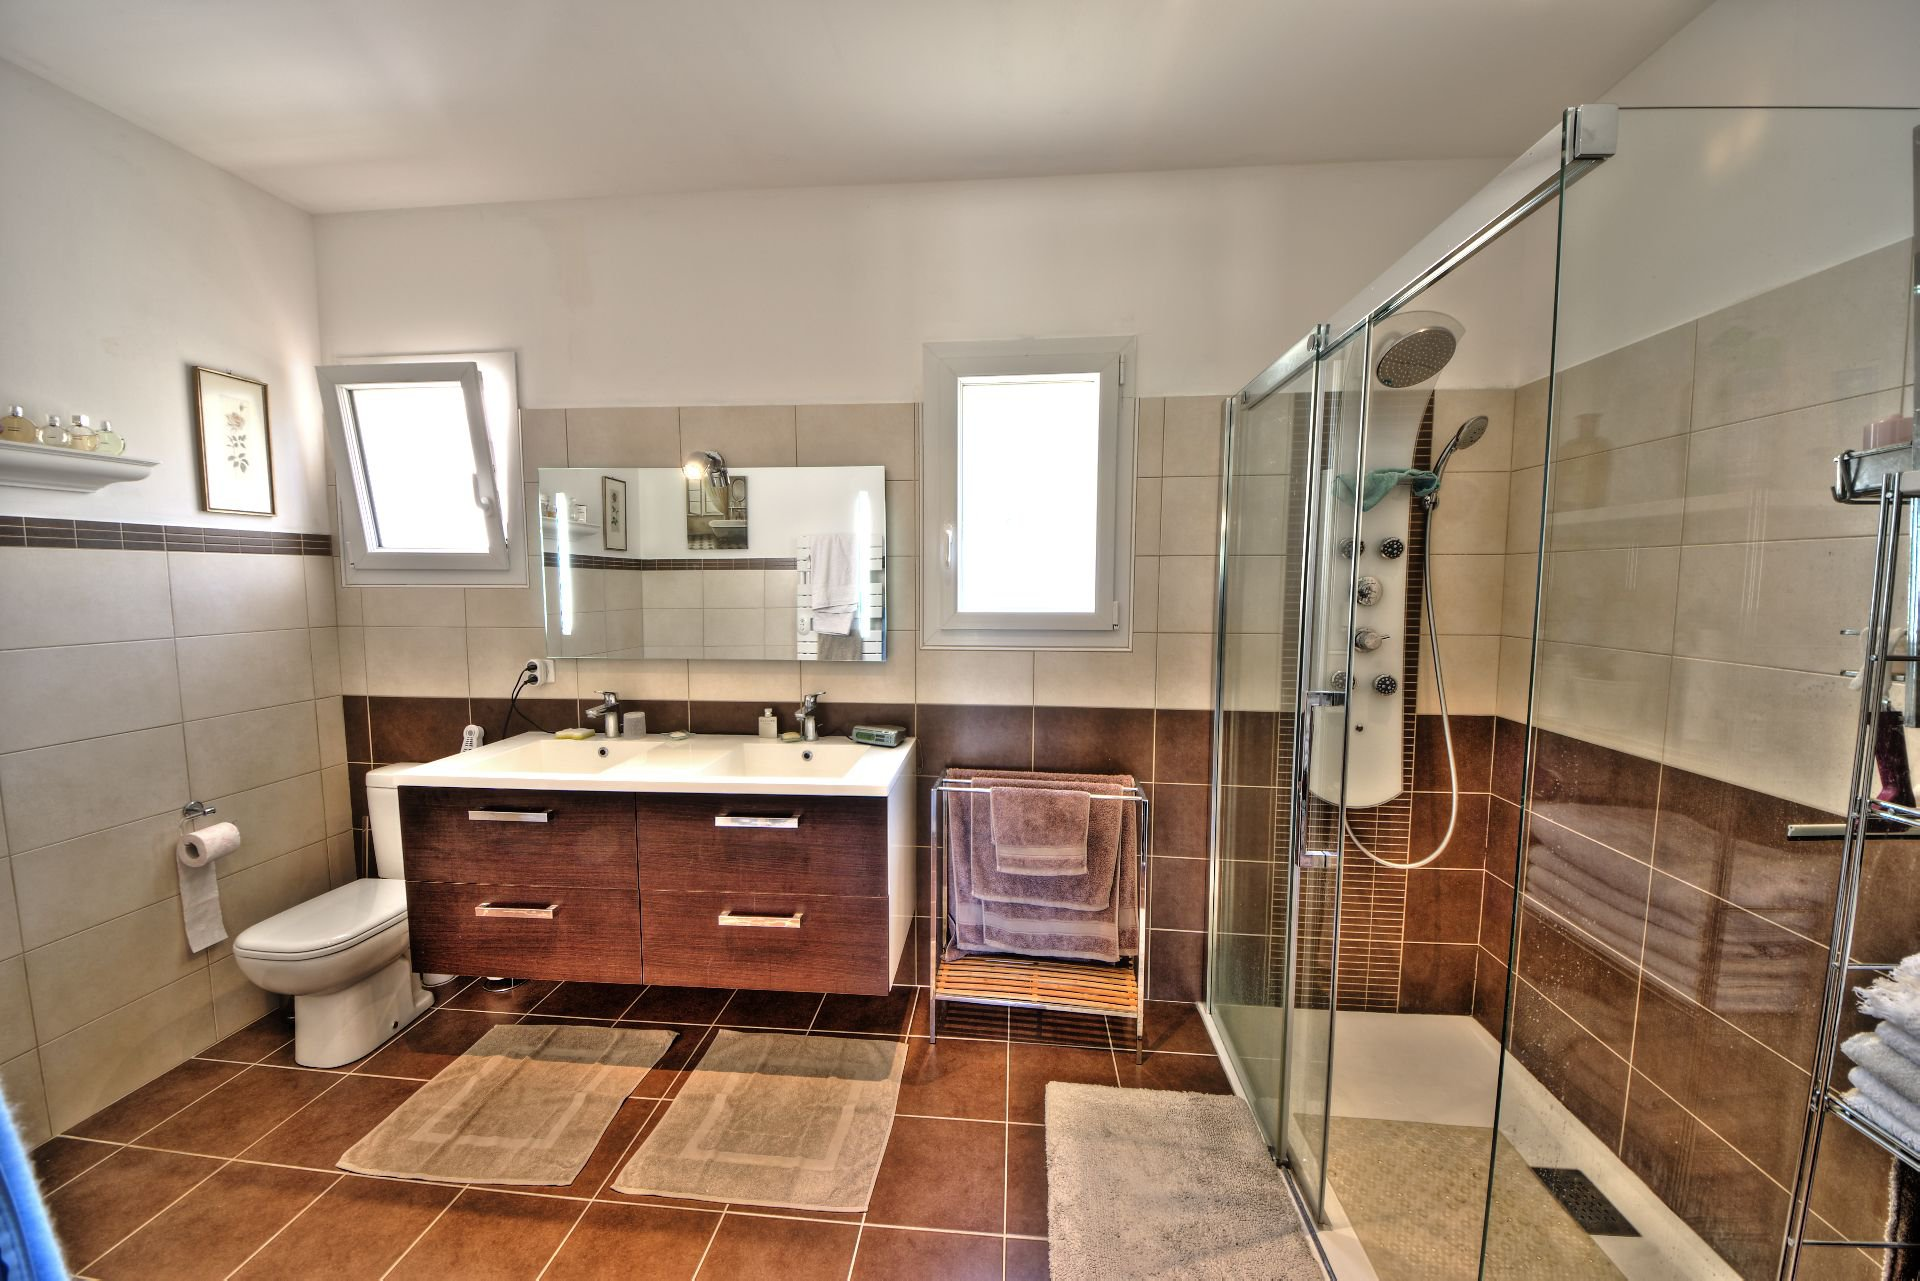 Shower room - quality and bright house with beautiful volumes in Moissac Bellevue Var Provence